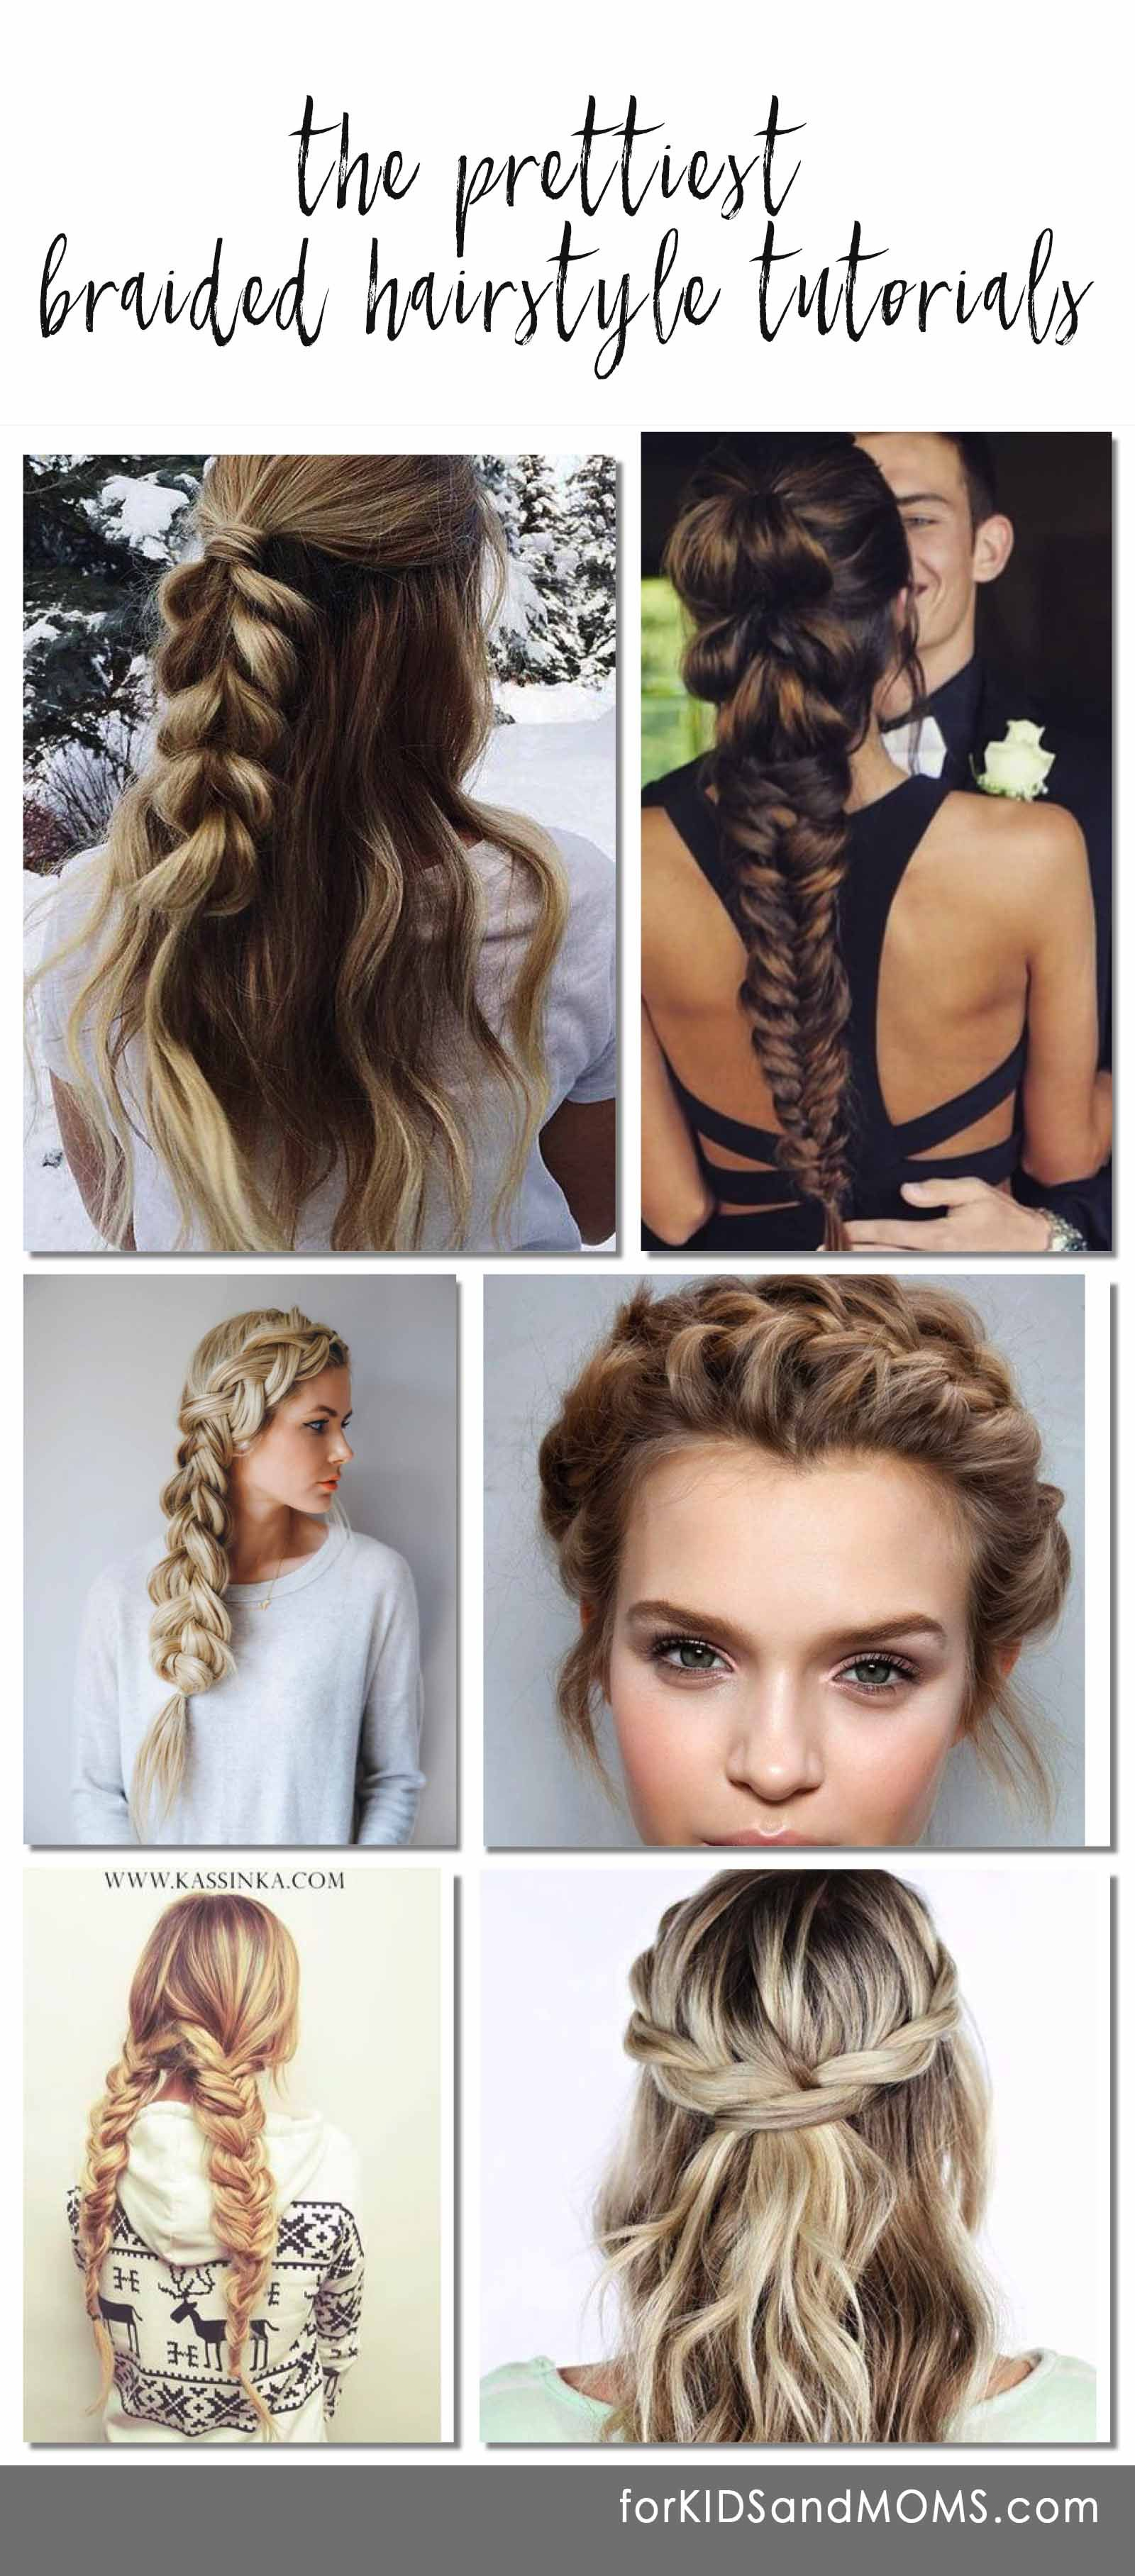 Pin On Hair Styles Hair Cuts Inspiration